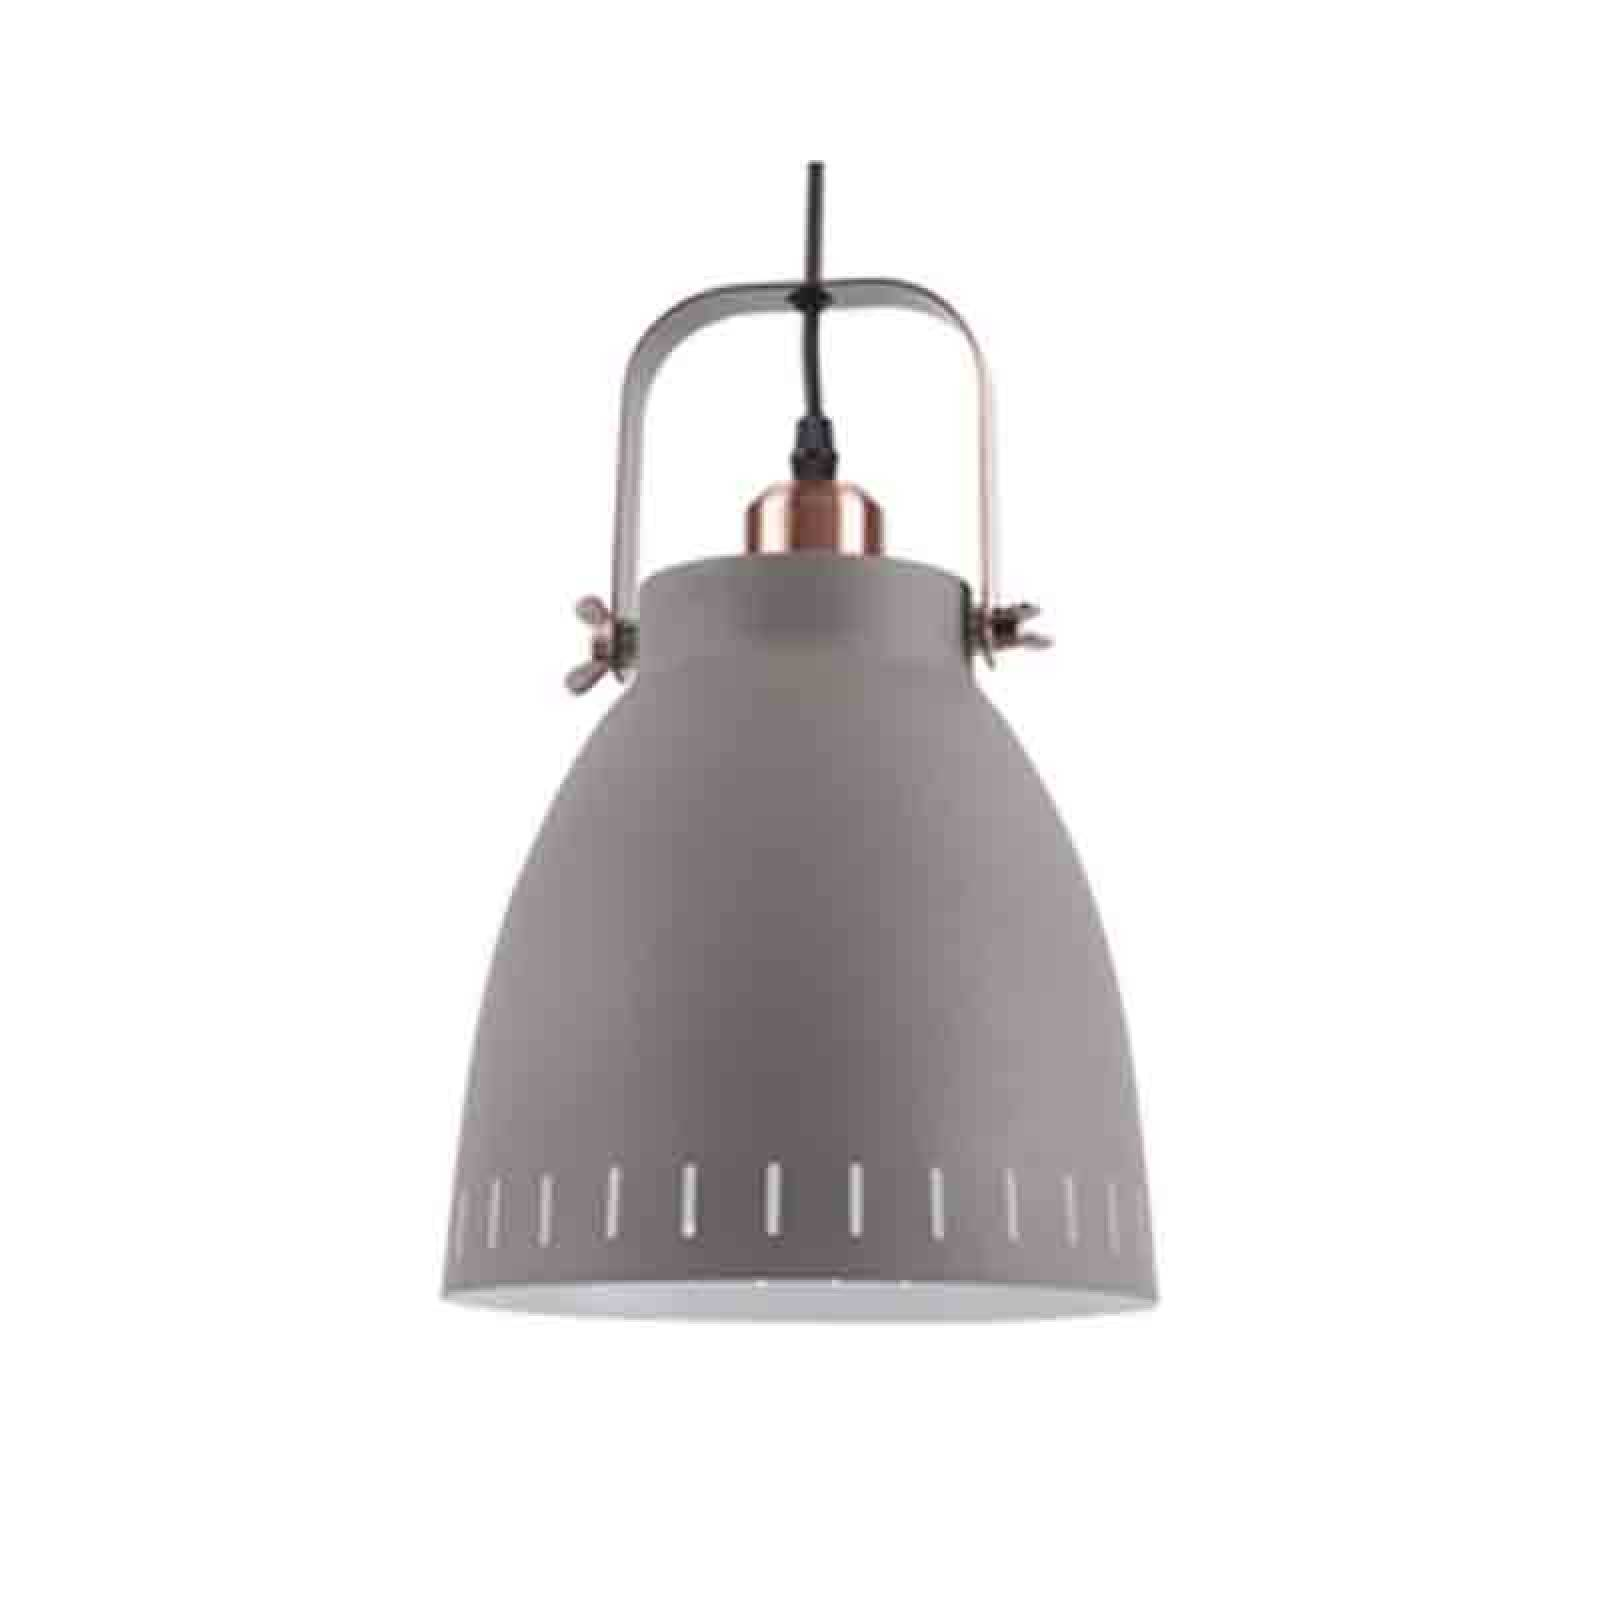 Mingle Ceiling Lamp In Grey thumbnails